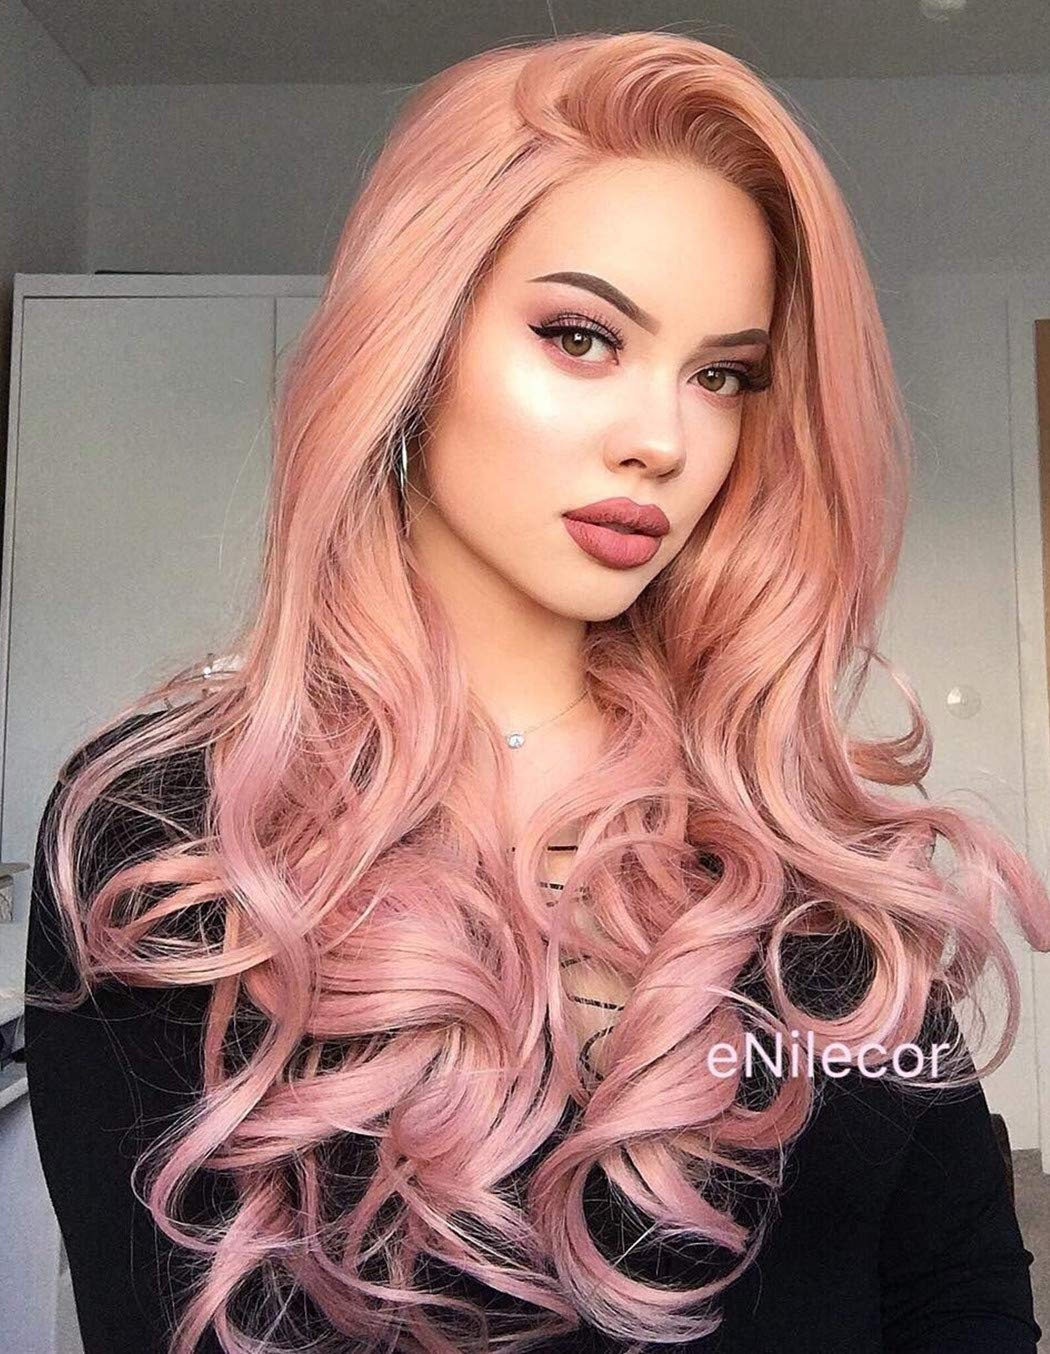 eNilecor Pink Lace Front Wigs,Long Curly Synthetic Color Lace Wig Hair Replacement Wigs for Women 22 Inches with Wig Cap (Pink) by eNilecor